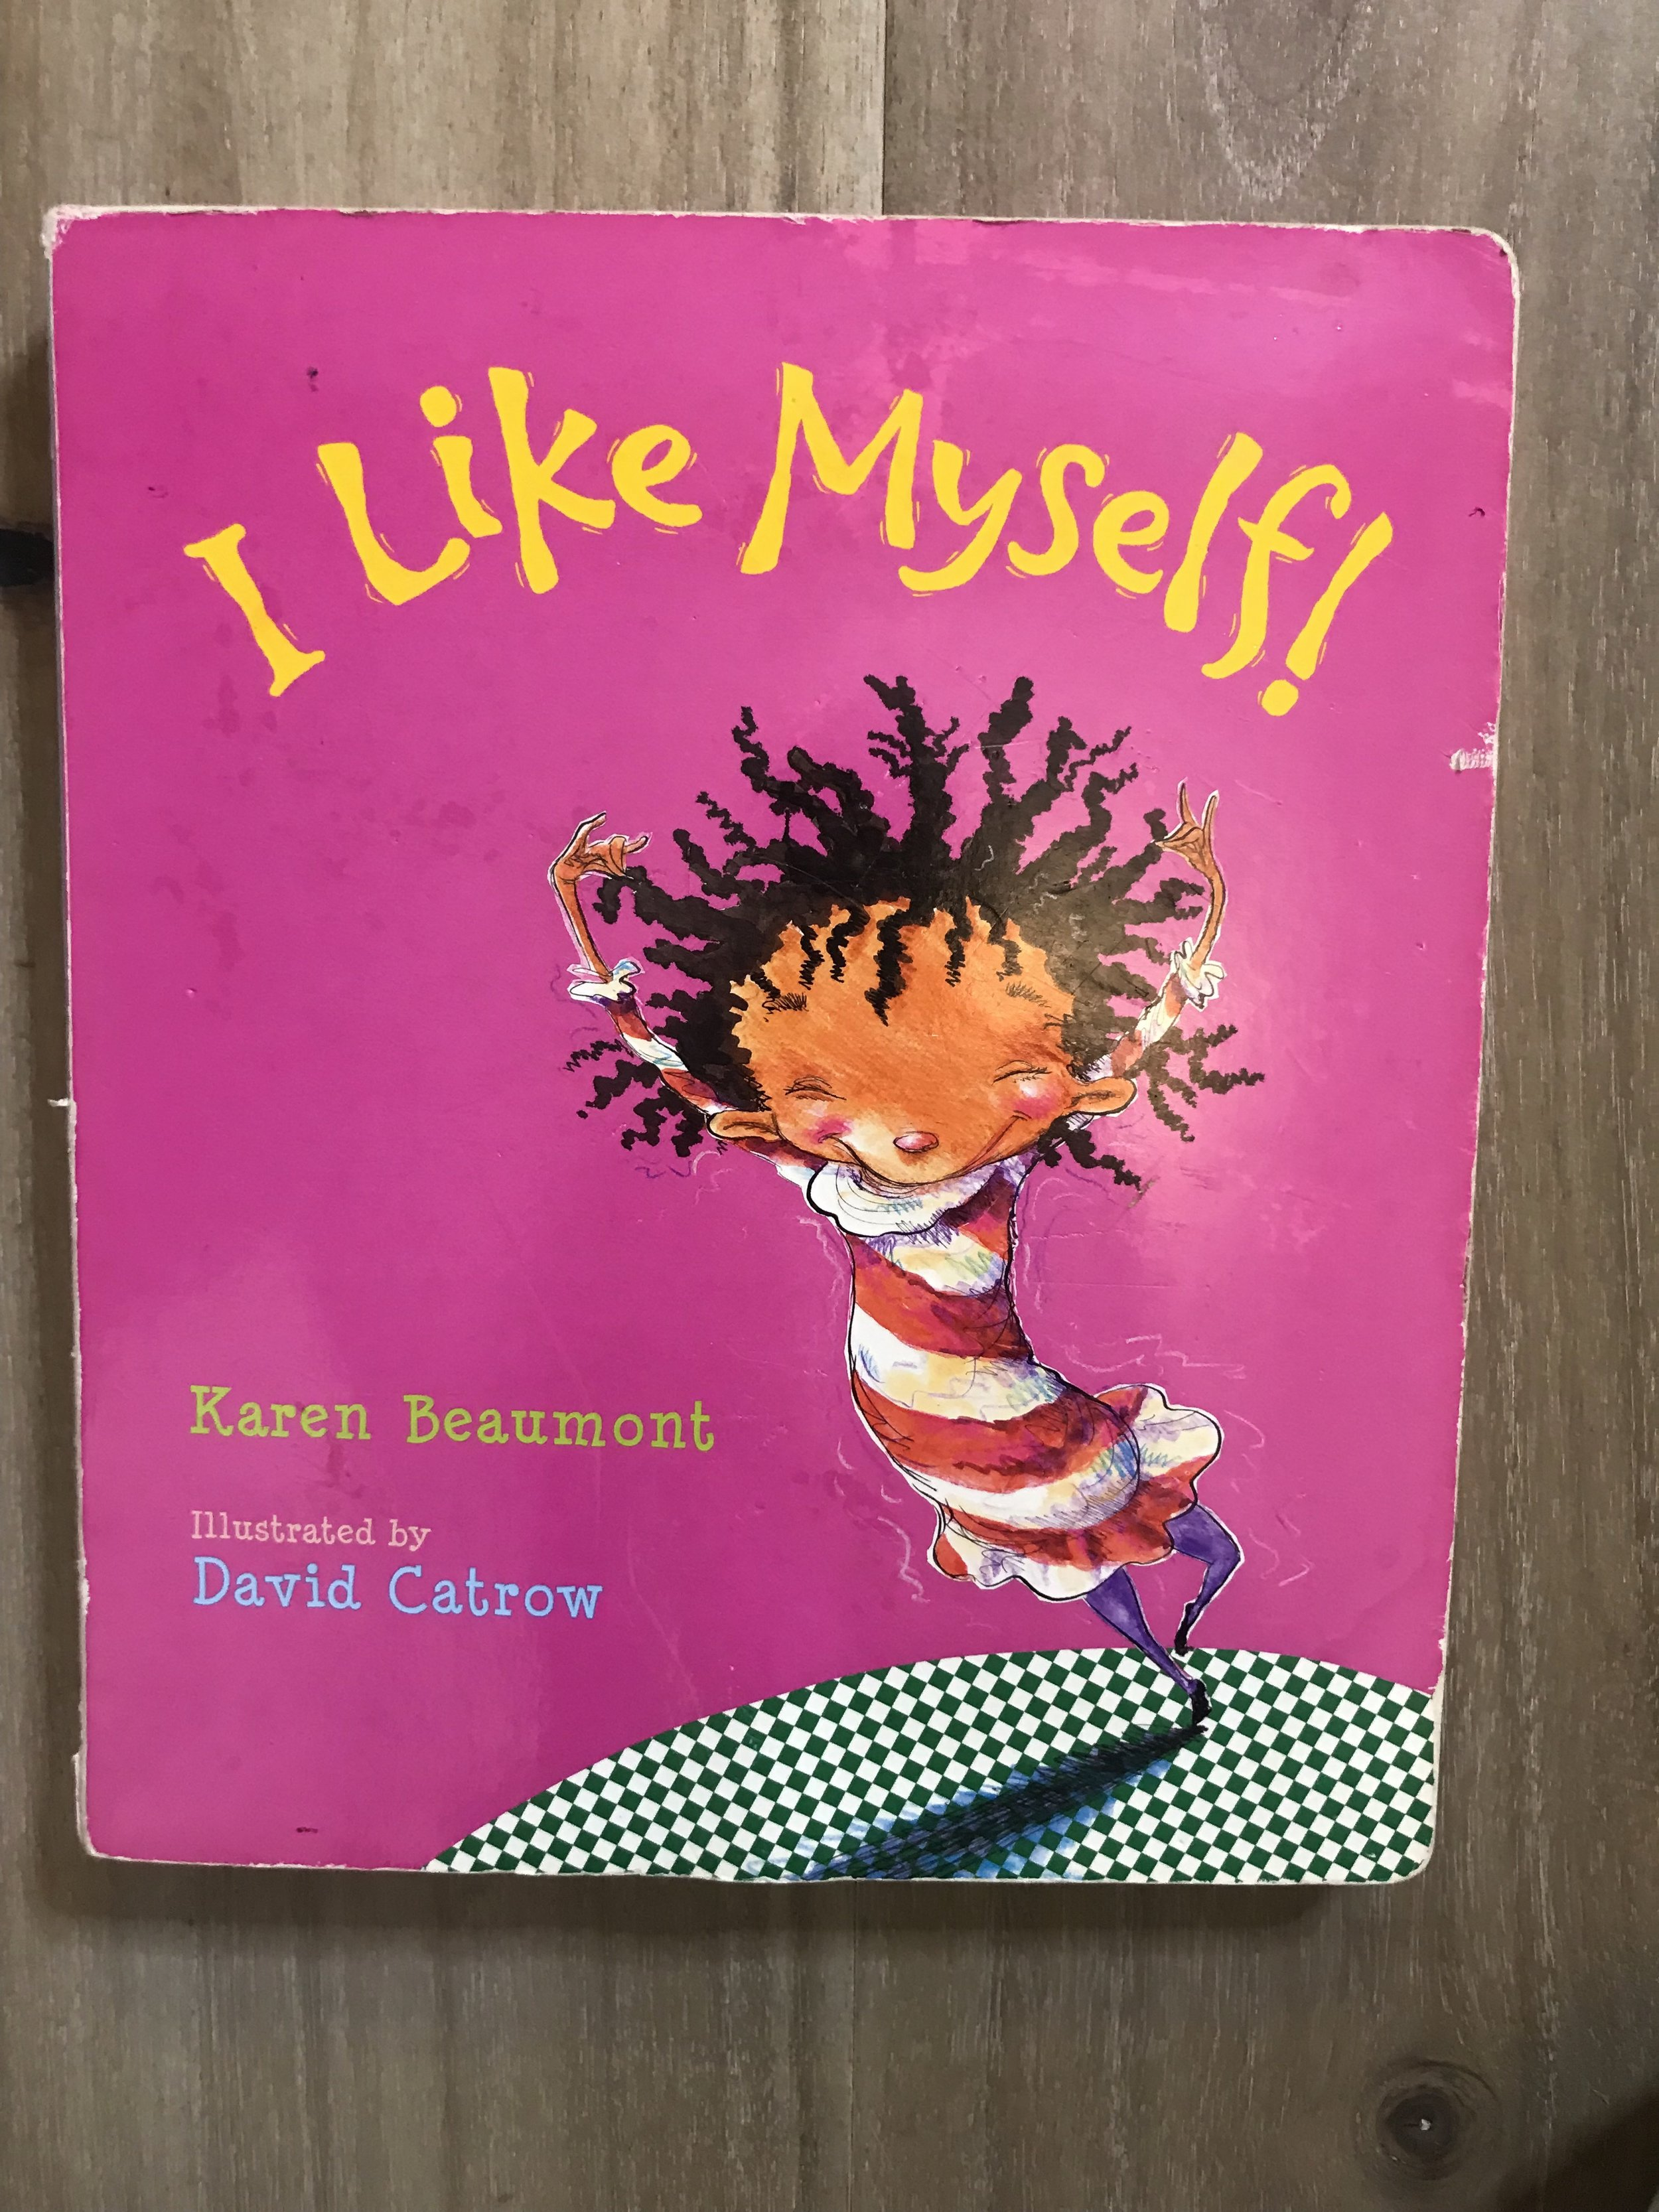 I purchased this book for Elle when she was about 2yes old and having issues about her curly hair. This book teaches kids to love themselves no matter their appearance or flaws!